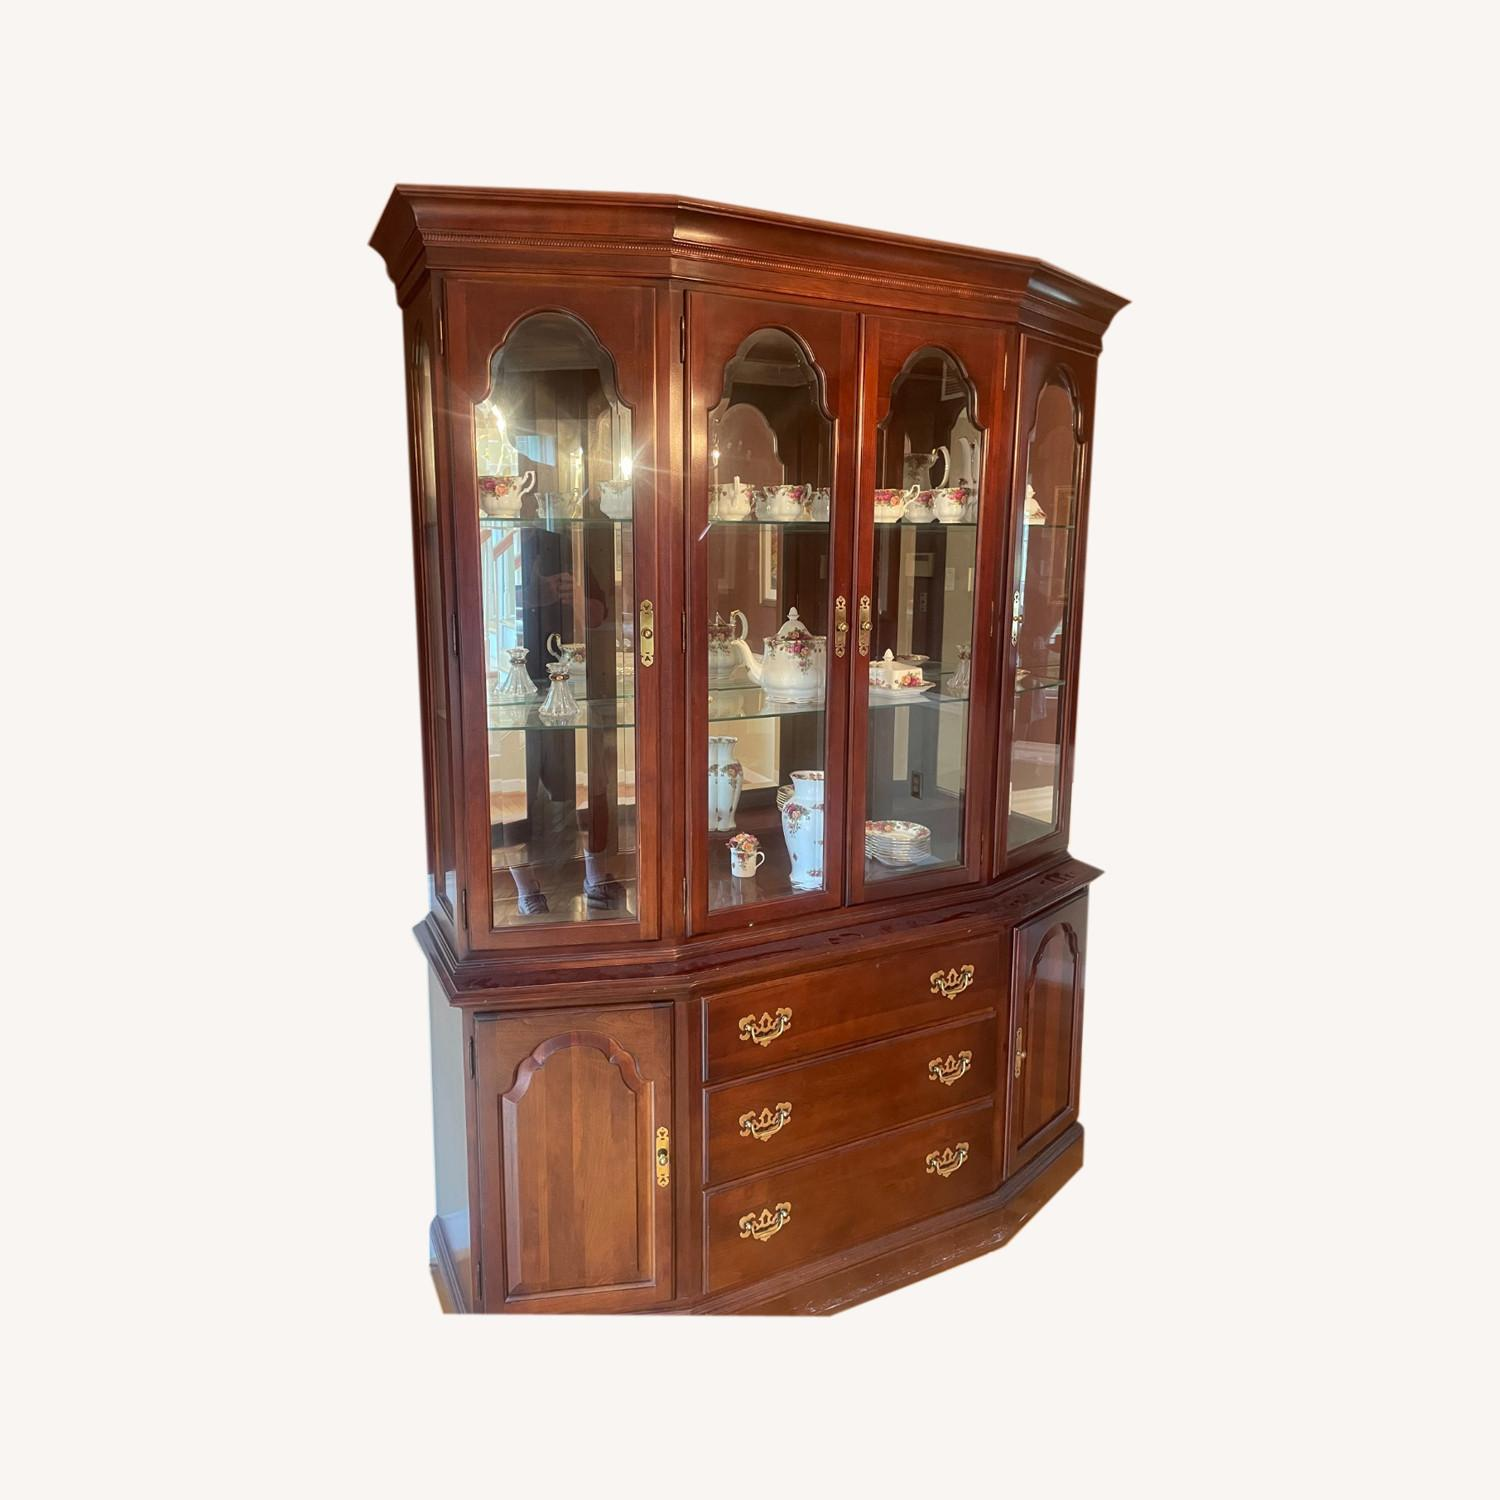 Ethan Allen Cherry Wood China Cabinet - image-0